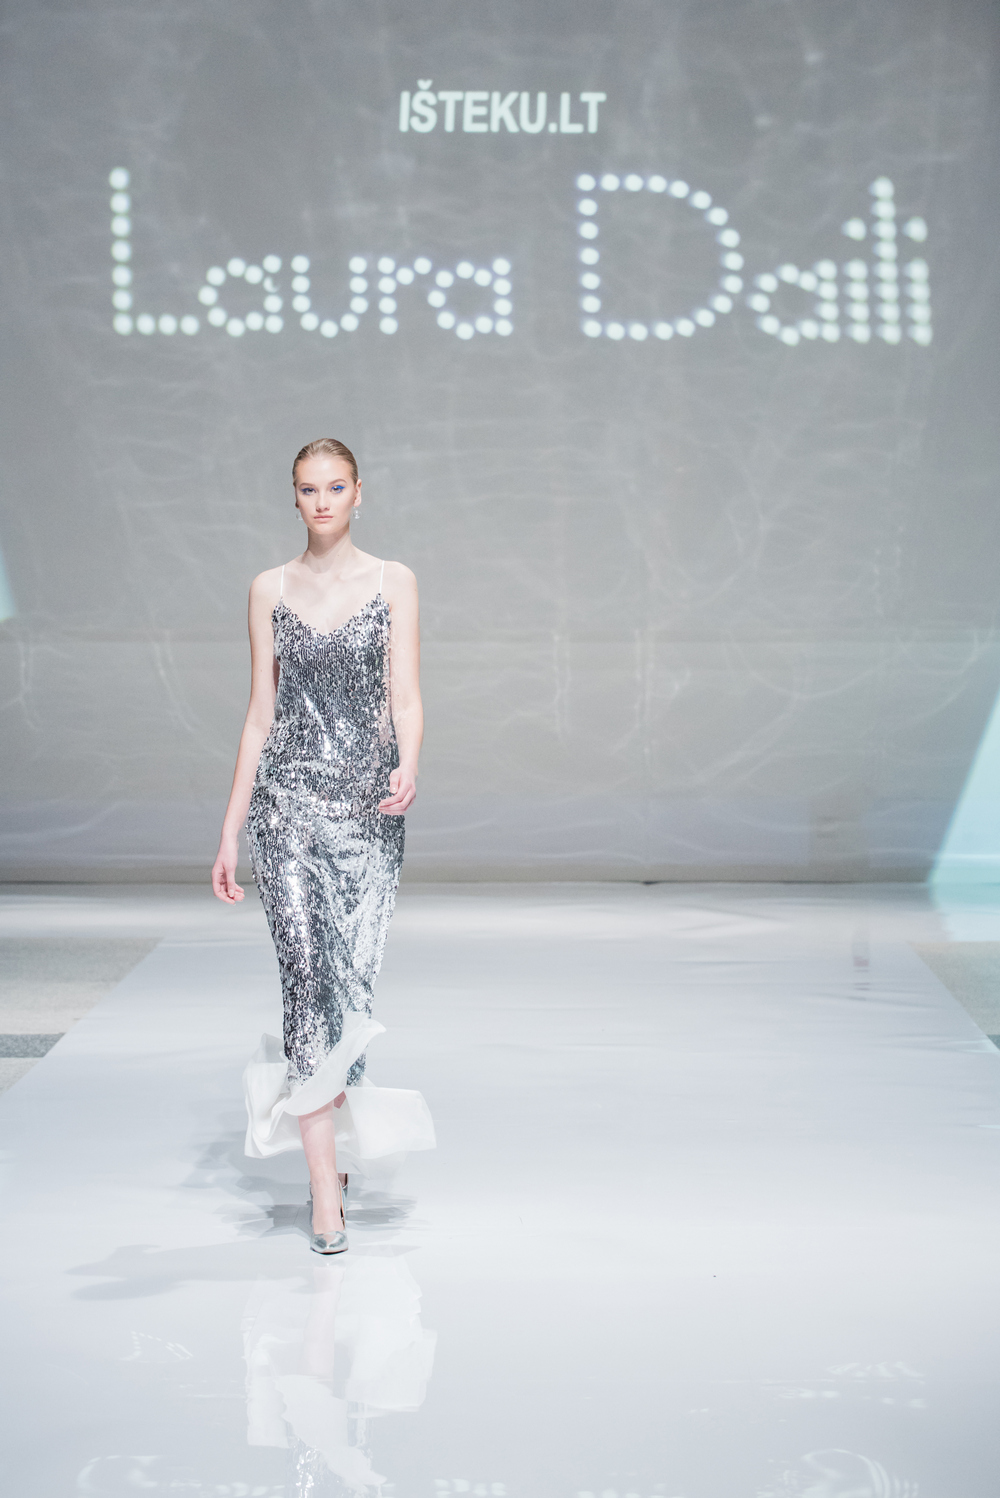 Laura Daili Bridal Collection 2017 Isteku lt (23)